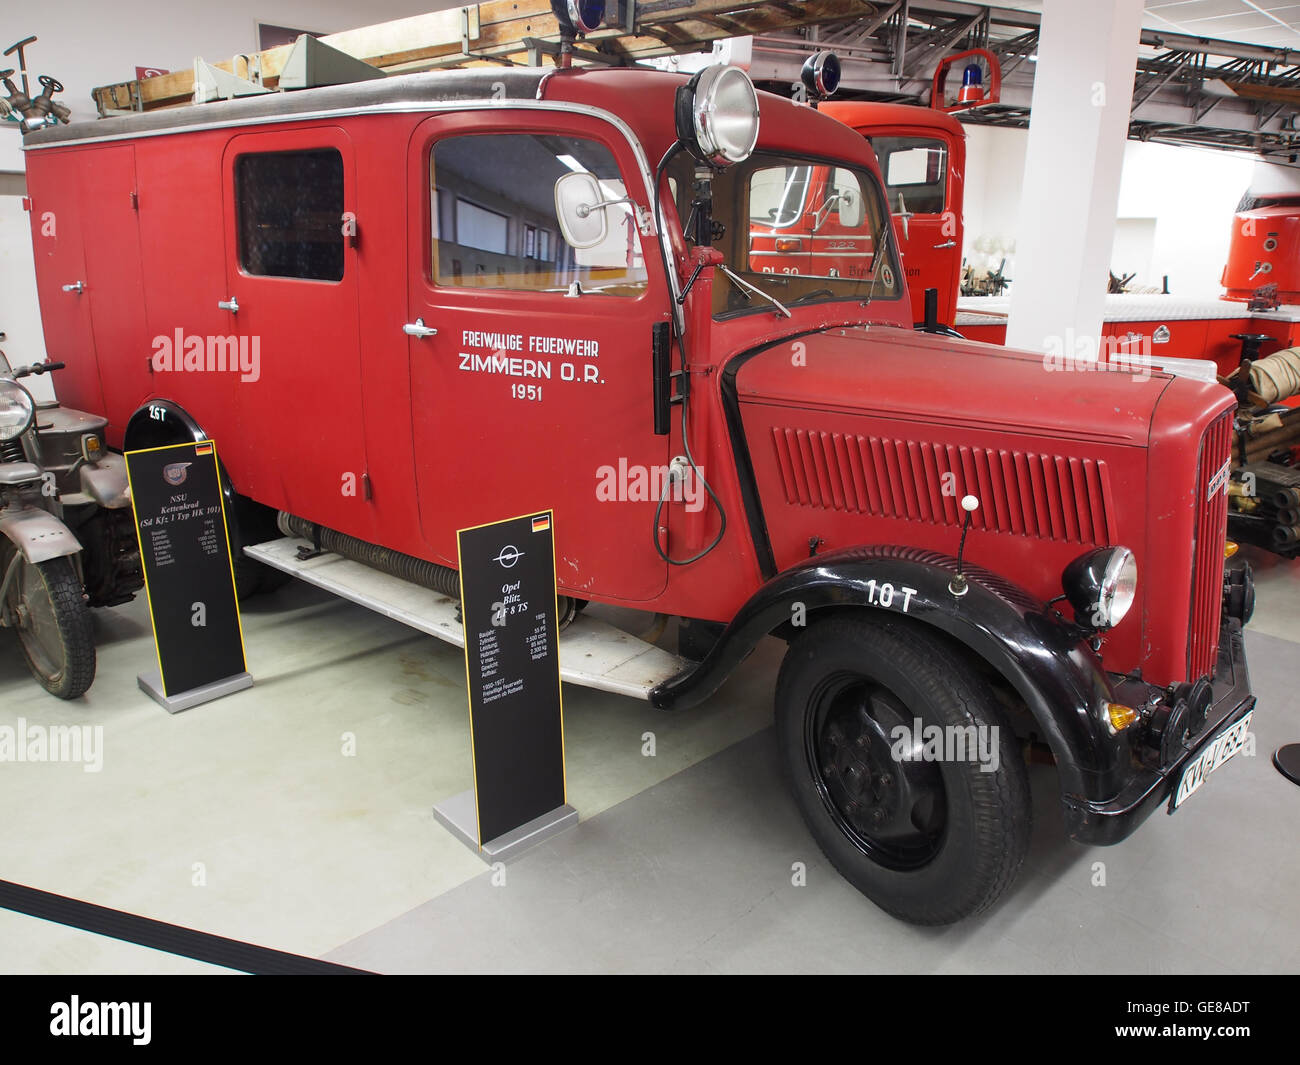 1950 opel blitz lf 8 ts feuerwehr zimmern or pic1 stockfoto bild 112051236 alamy. Black Bedroom Furniture Sets. Home Design Ideas